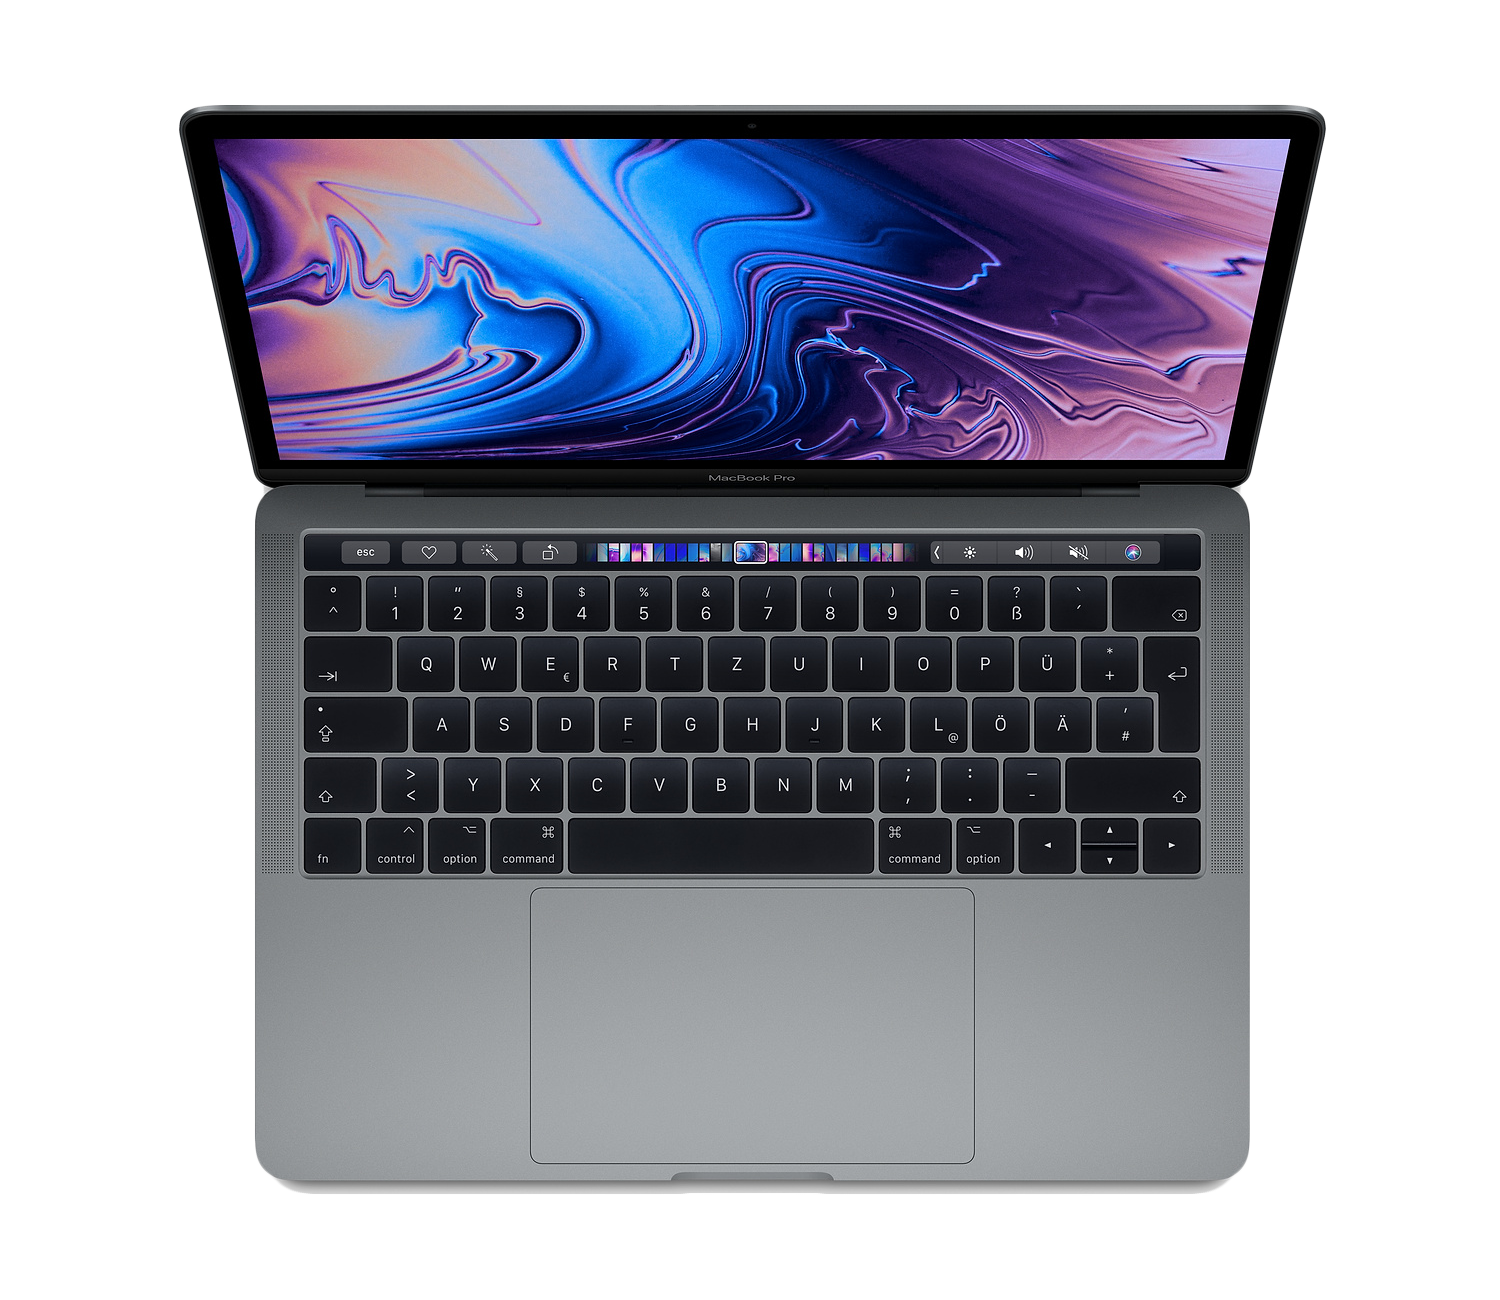 Apple-13-Zoll-MacBook-Pro-Space-Grau-MUHN2DA-i5-8GB-128GB-SSD-Intel-Iris-Plus-Graphics-645-Deutsch